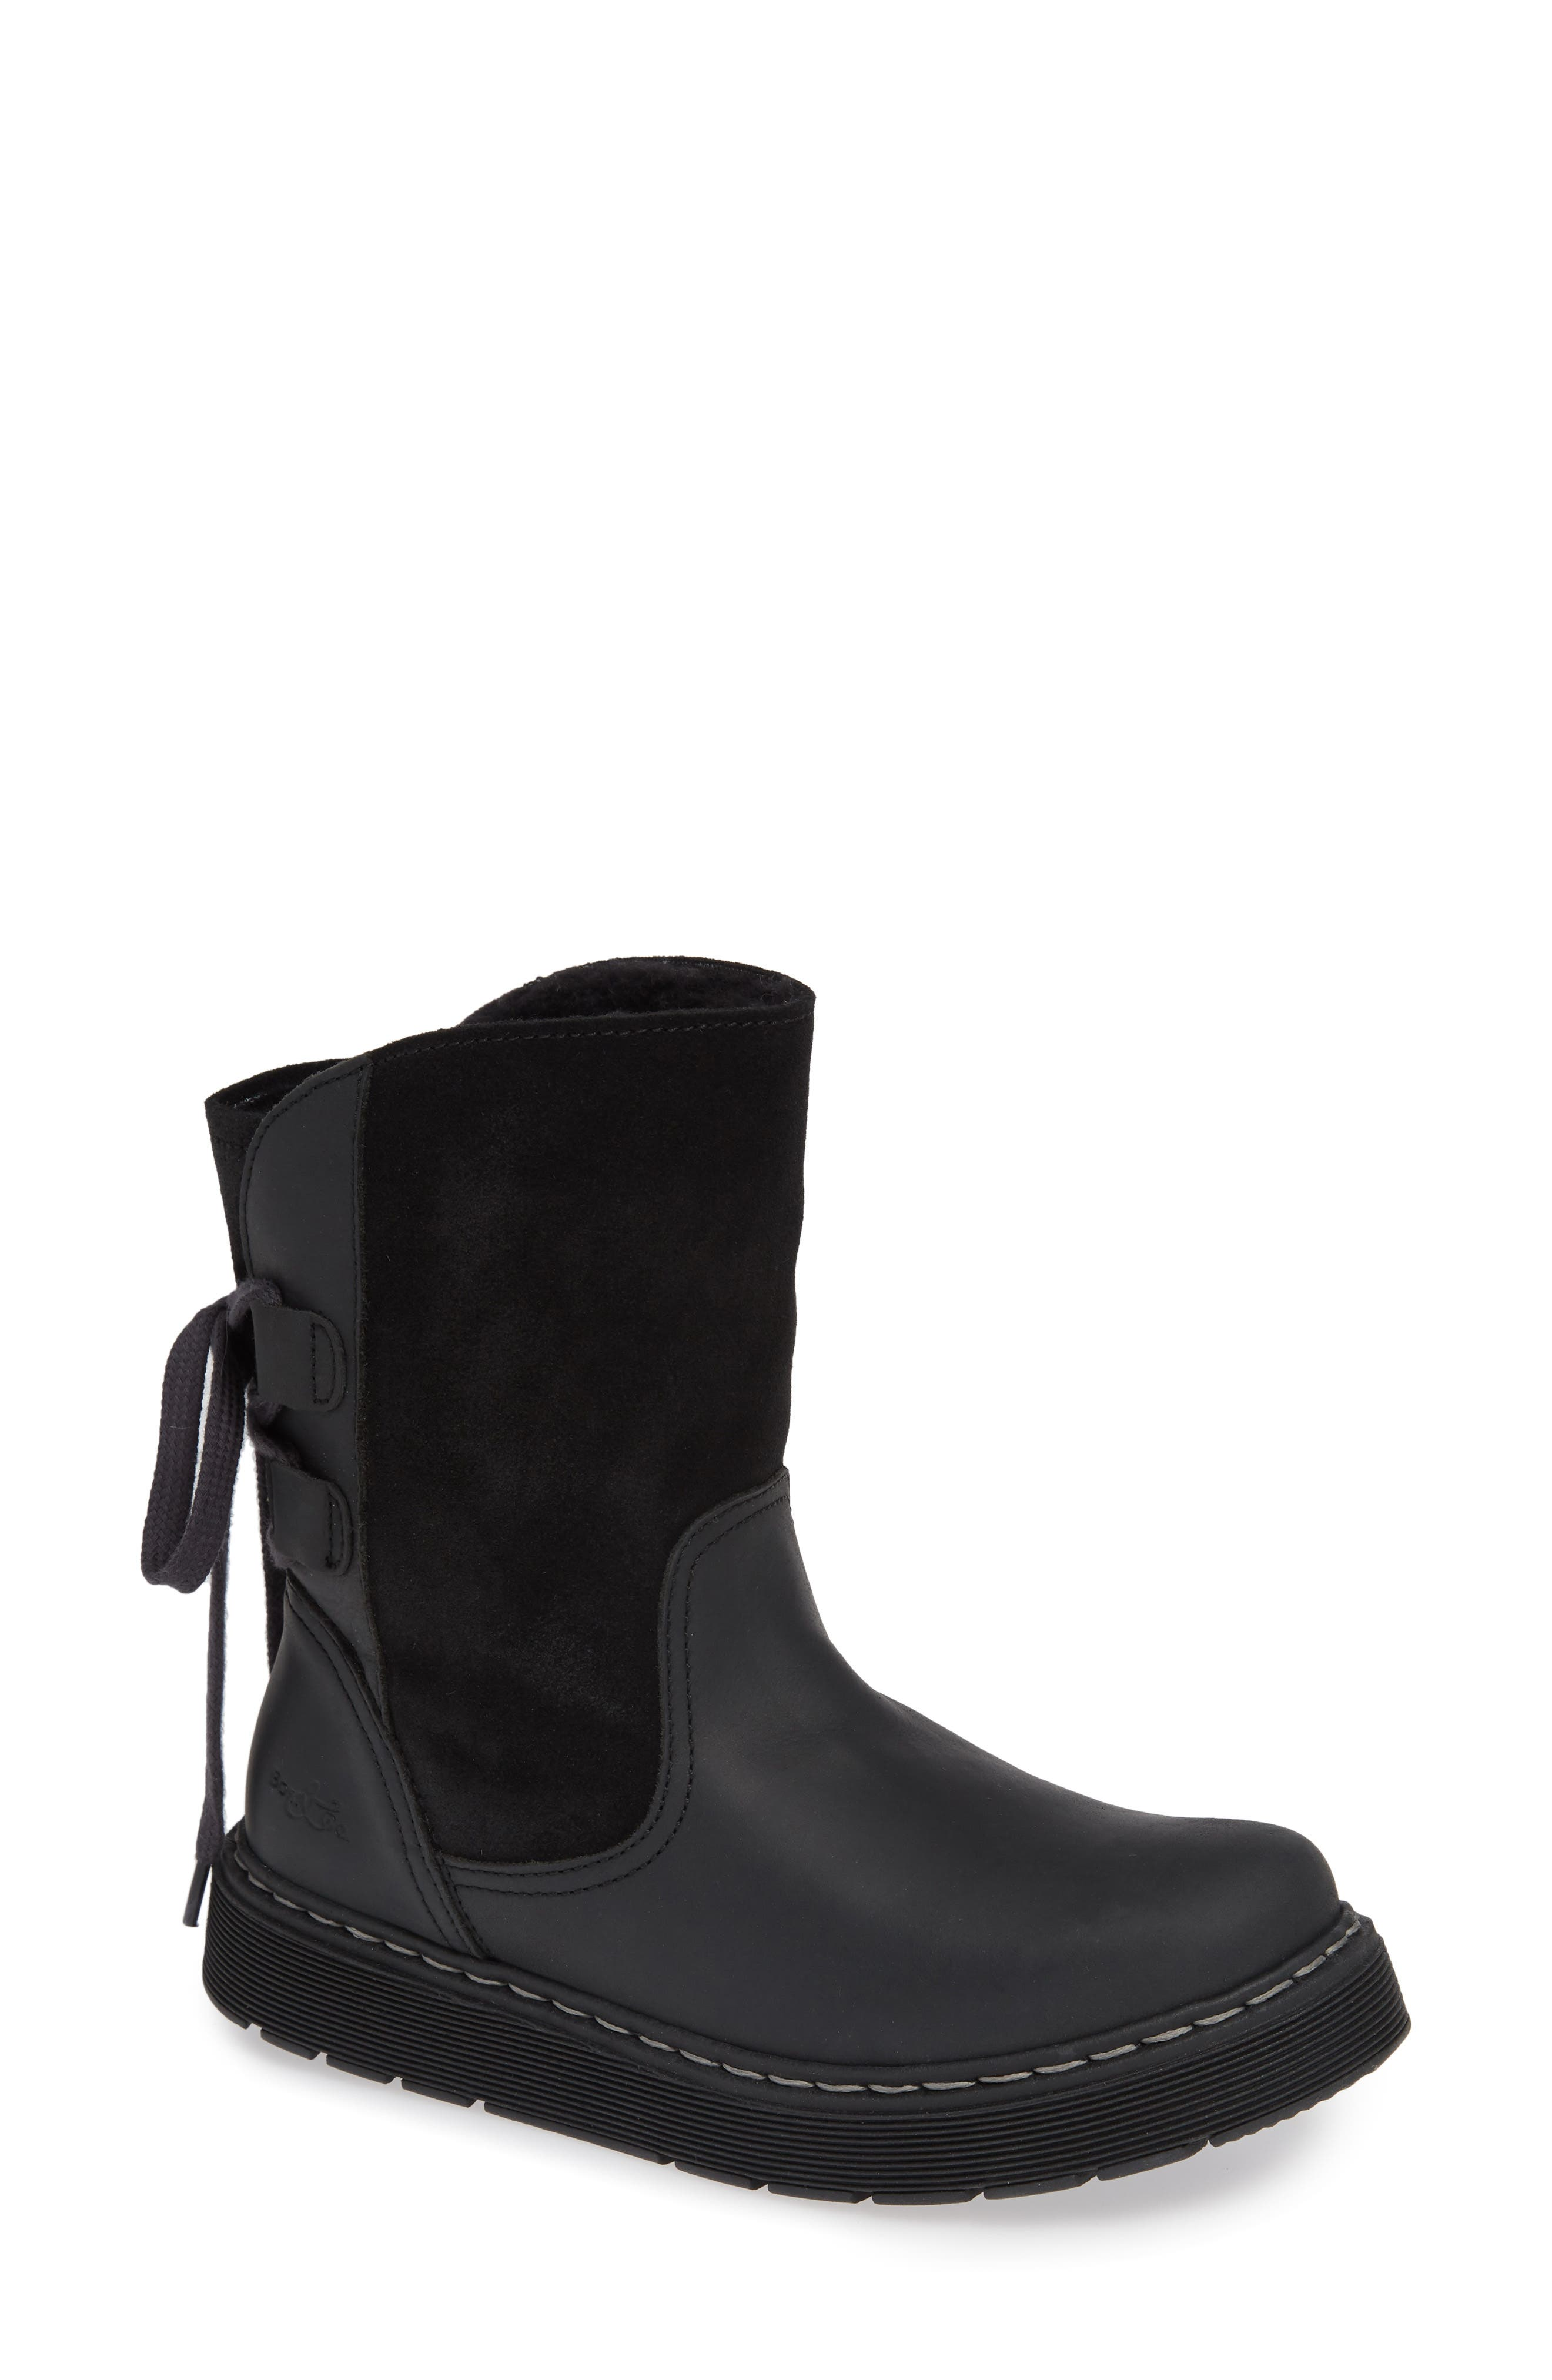 Bos. & Co. Omega Waterproof Lace-Back Boot - Black